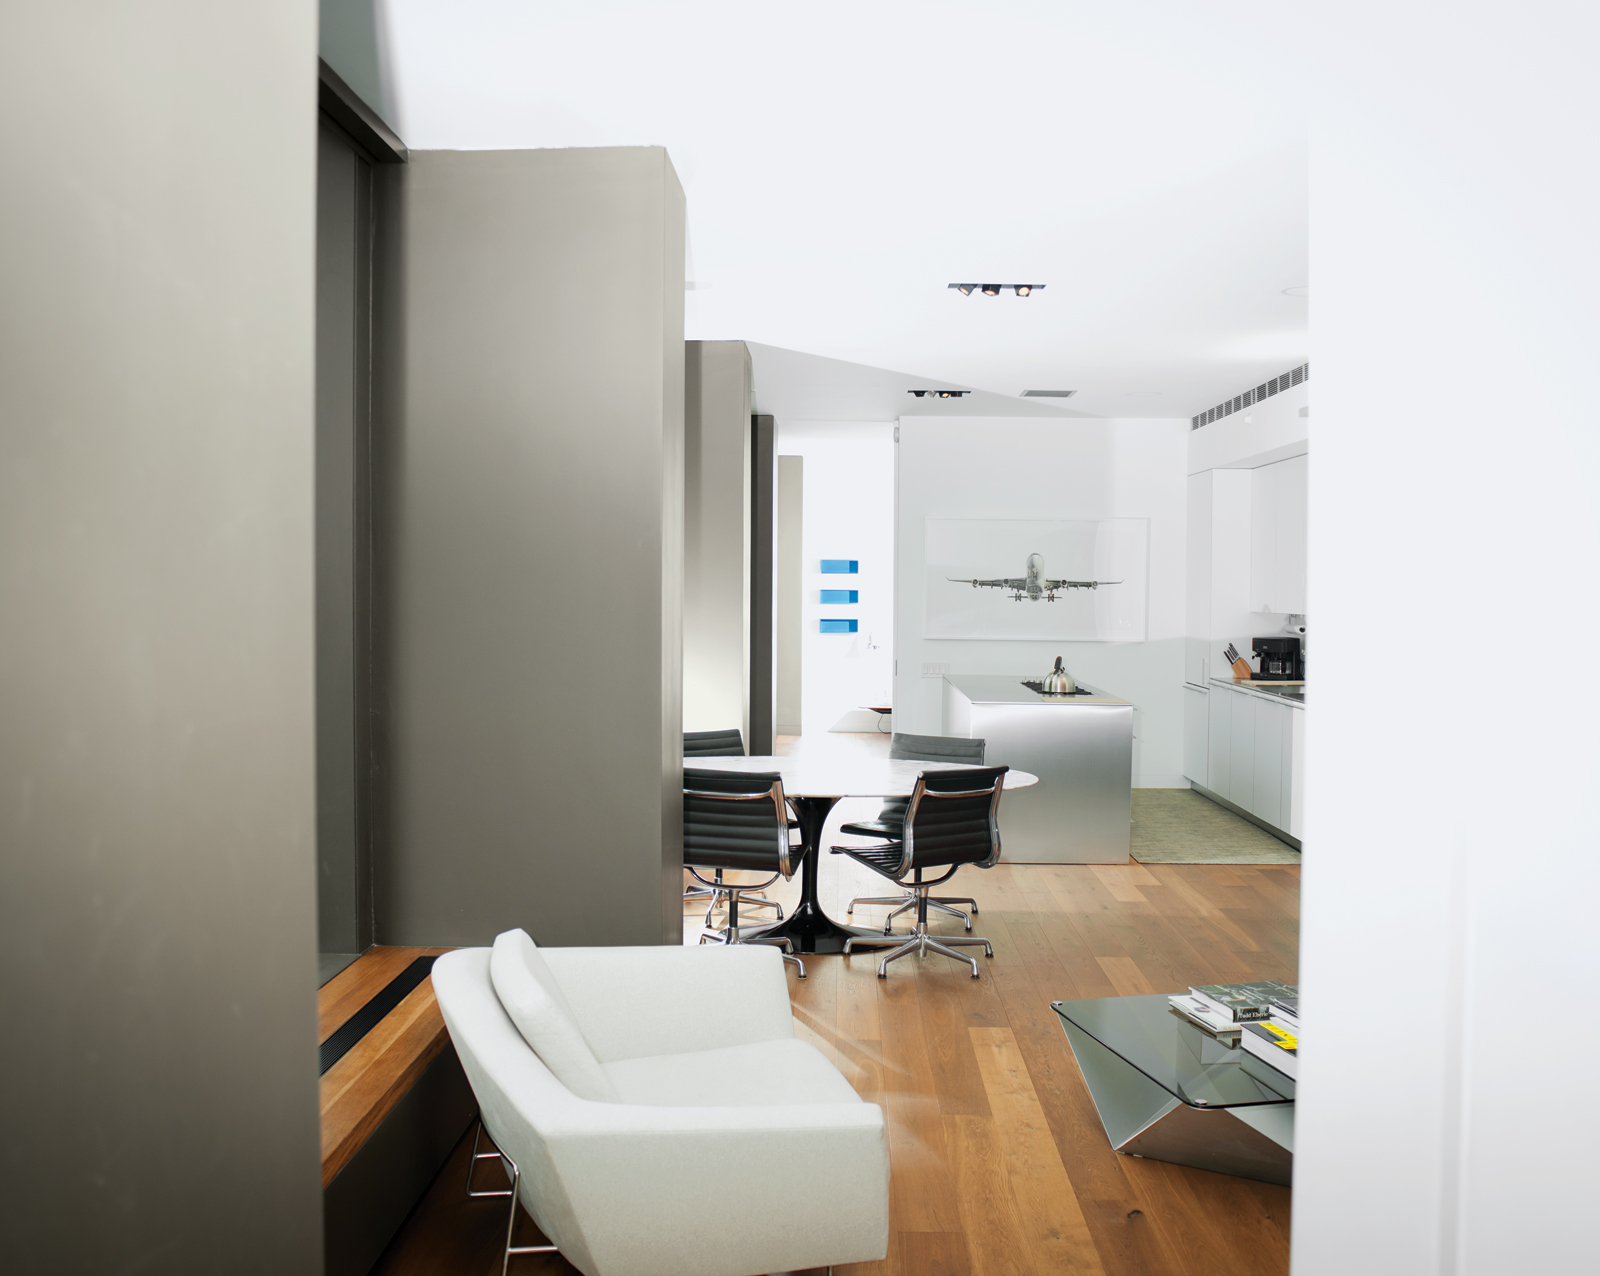 Modern Bulthaup kitchen area with window wall